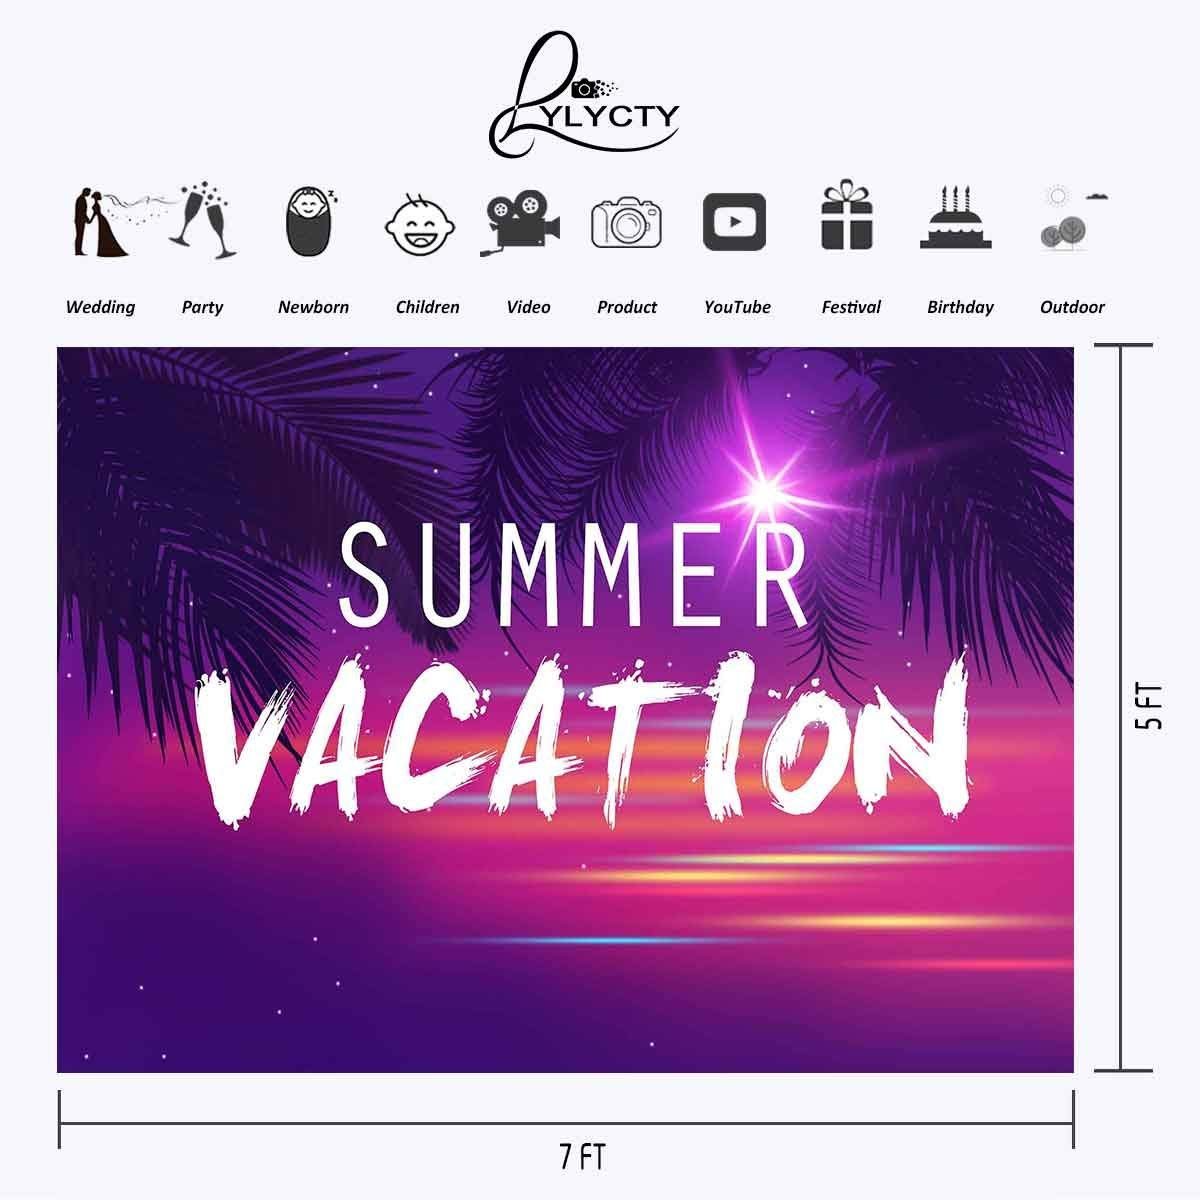 Image 2 - 7x5ft Summer Vacation Backdrop Ultra Violet Color Photo Backdrops Coconut Tree Branch Photography Background Studio Props-in Photo Studio Accessories from Consumer Electronics